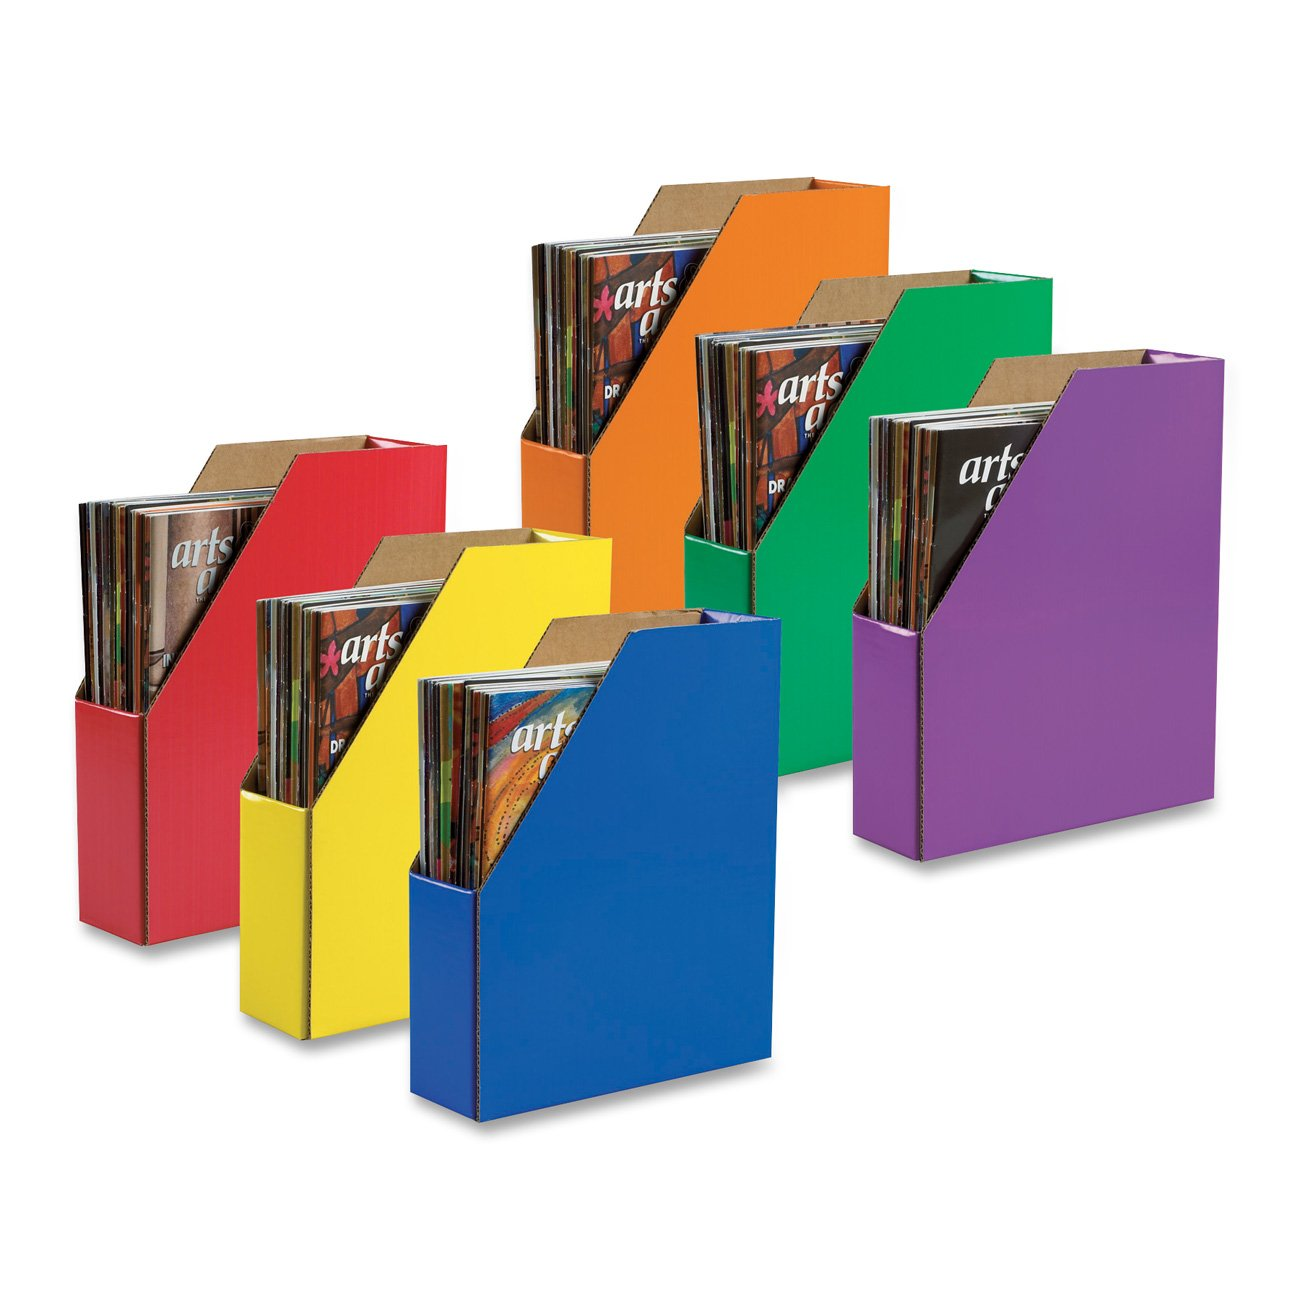 Delightful Amazon.com : Classroom Keepers Magazine Holders, 6 Assorted Colors,  (001327) : Office Storage Supplies : Office Products